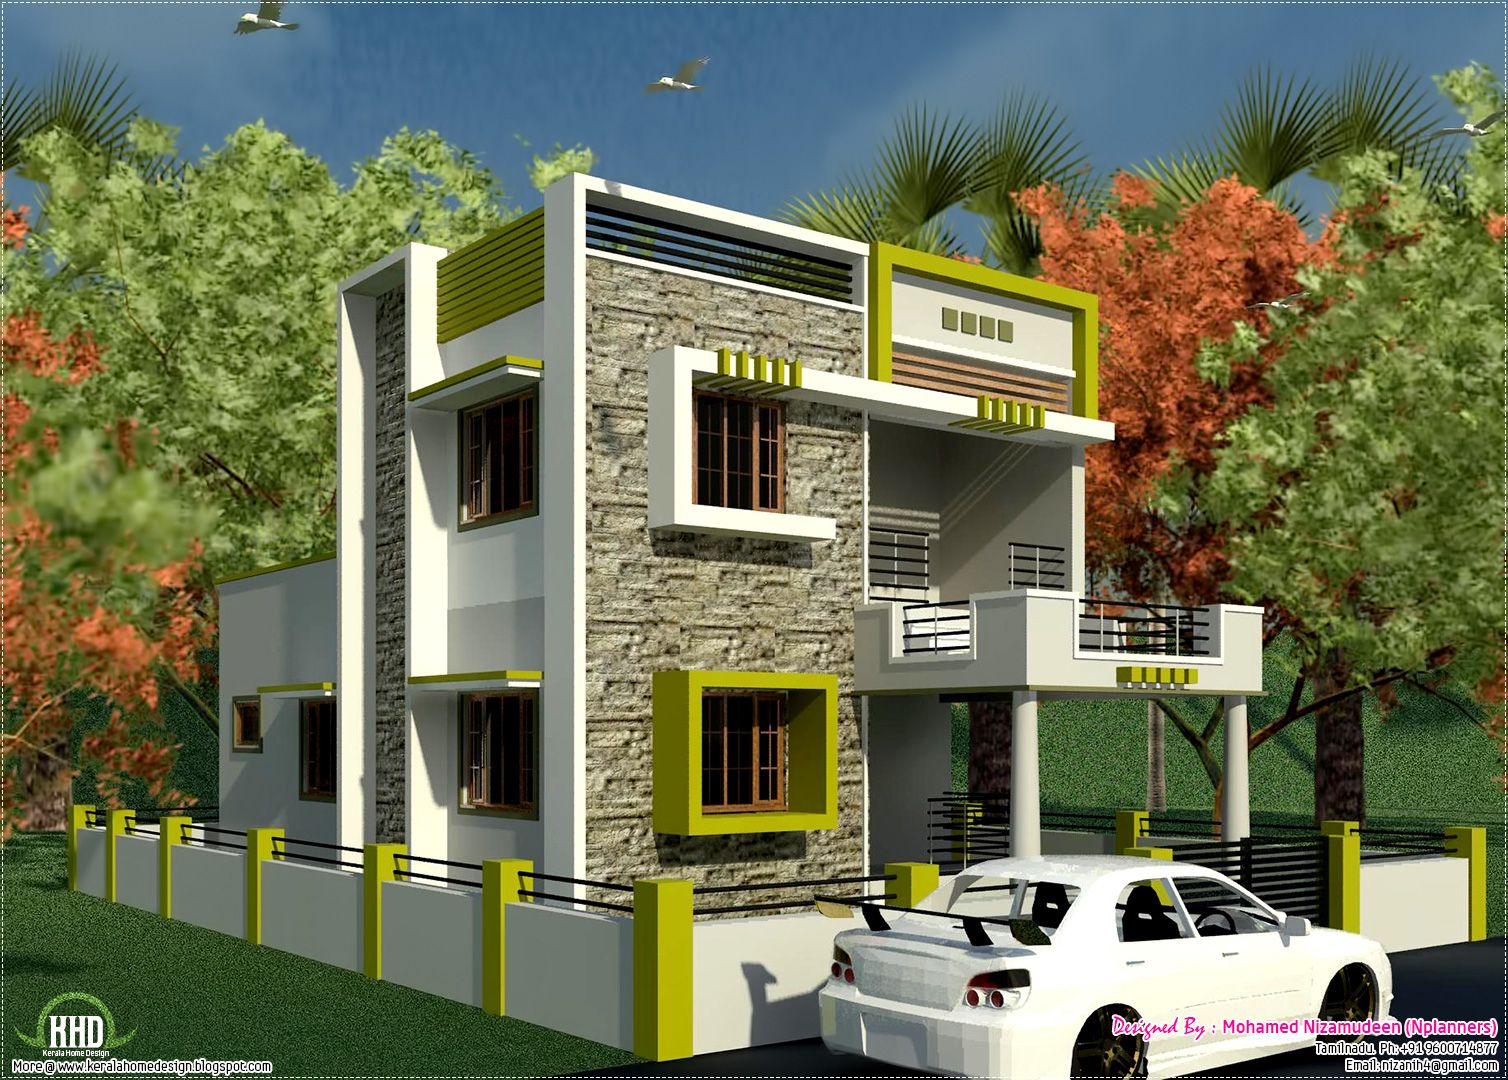 Small house with car park design tobfav com ideas for for Indian house models for construction